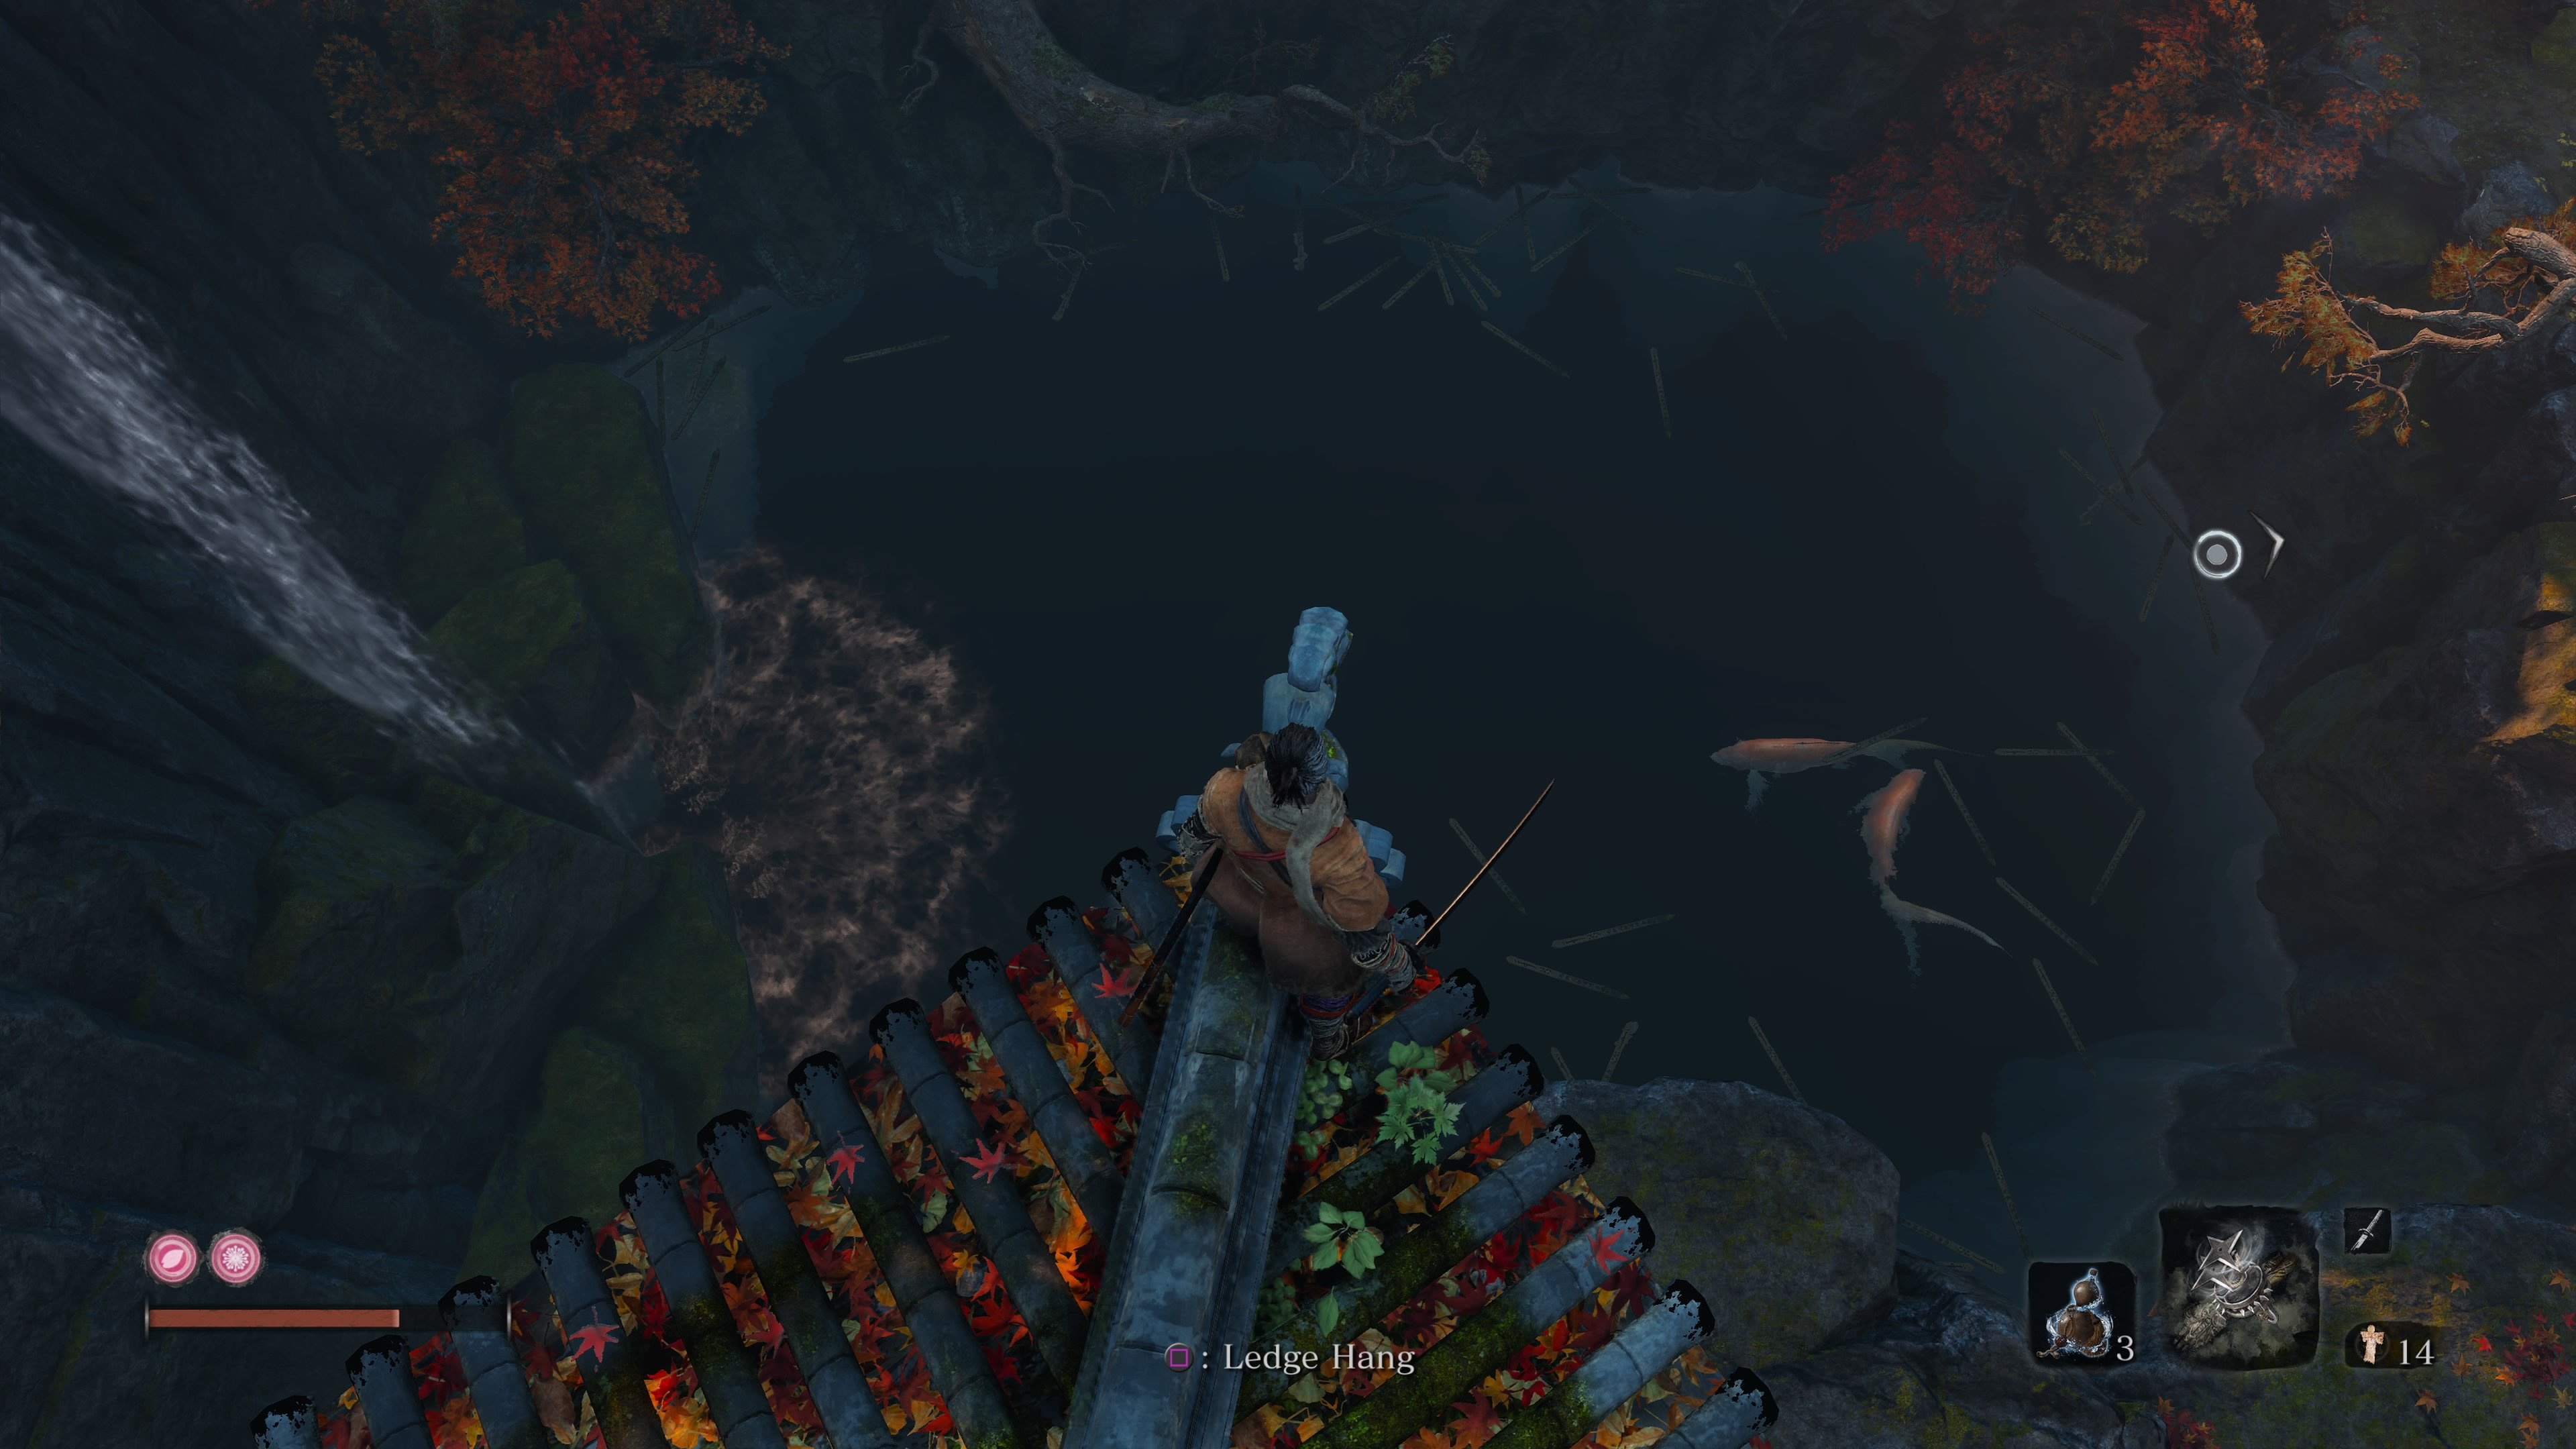 Senpou Temple Treasure Carp Scale location in Sekiro